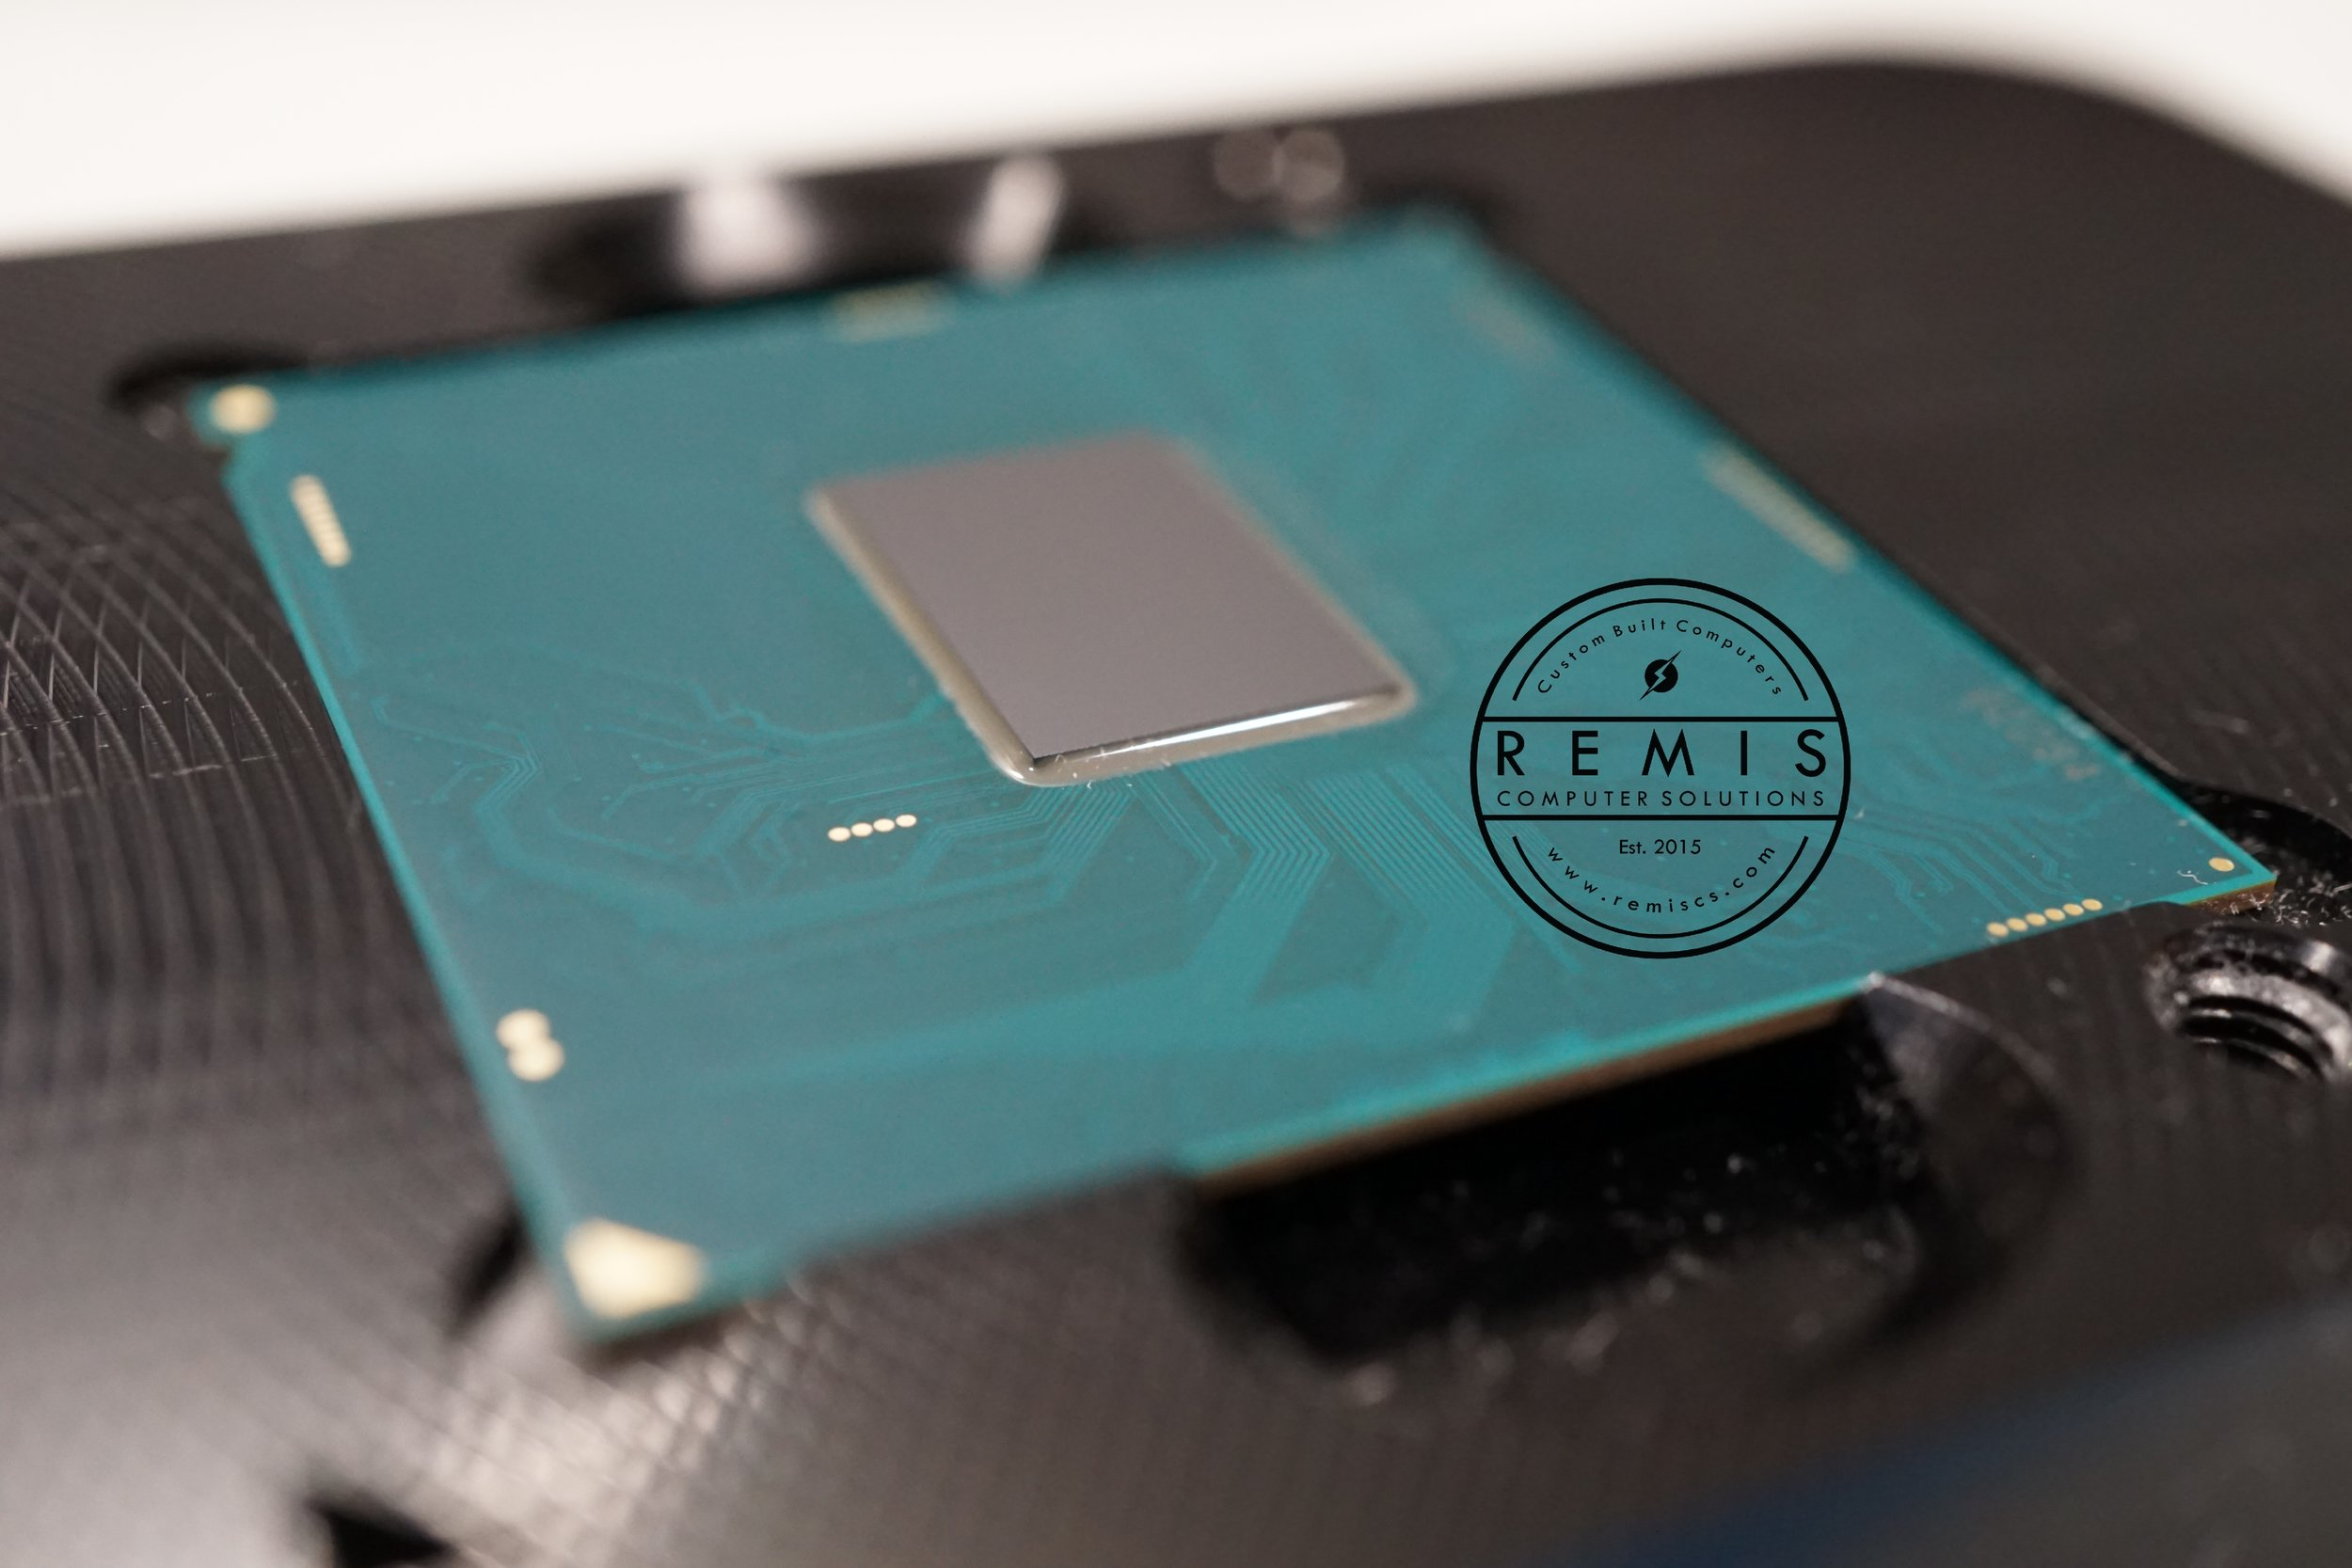 Intel CPU Delid Service: - INCLUDES ROCKITCOOL CNC COPPER IHSDelid, Clean, Apply Liquid Pro to CPU die, Install Rockitcool IHS, Reseal-Mainstream CPU (z170, z270, z370, etc) $80 Shipped within Contiguous US (Lower 48)-2066 x299 CPU (7800x to 7980xe) $150 Shipped within Contiguous US (Lower 48)